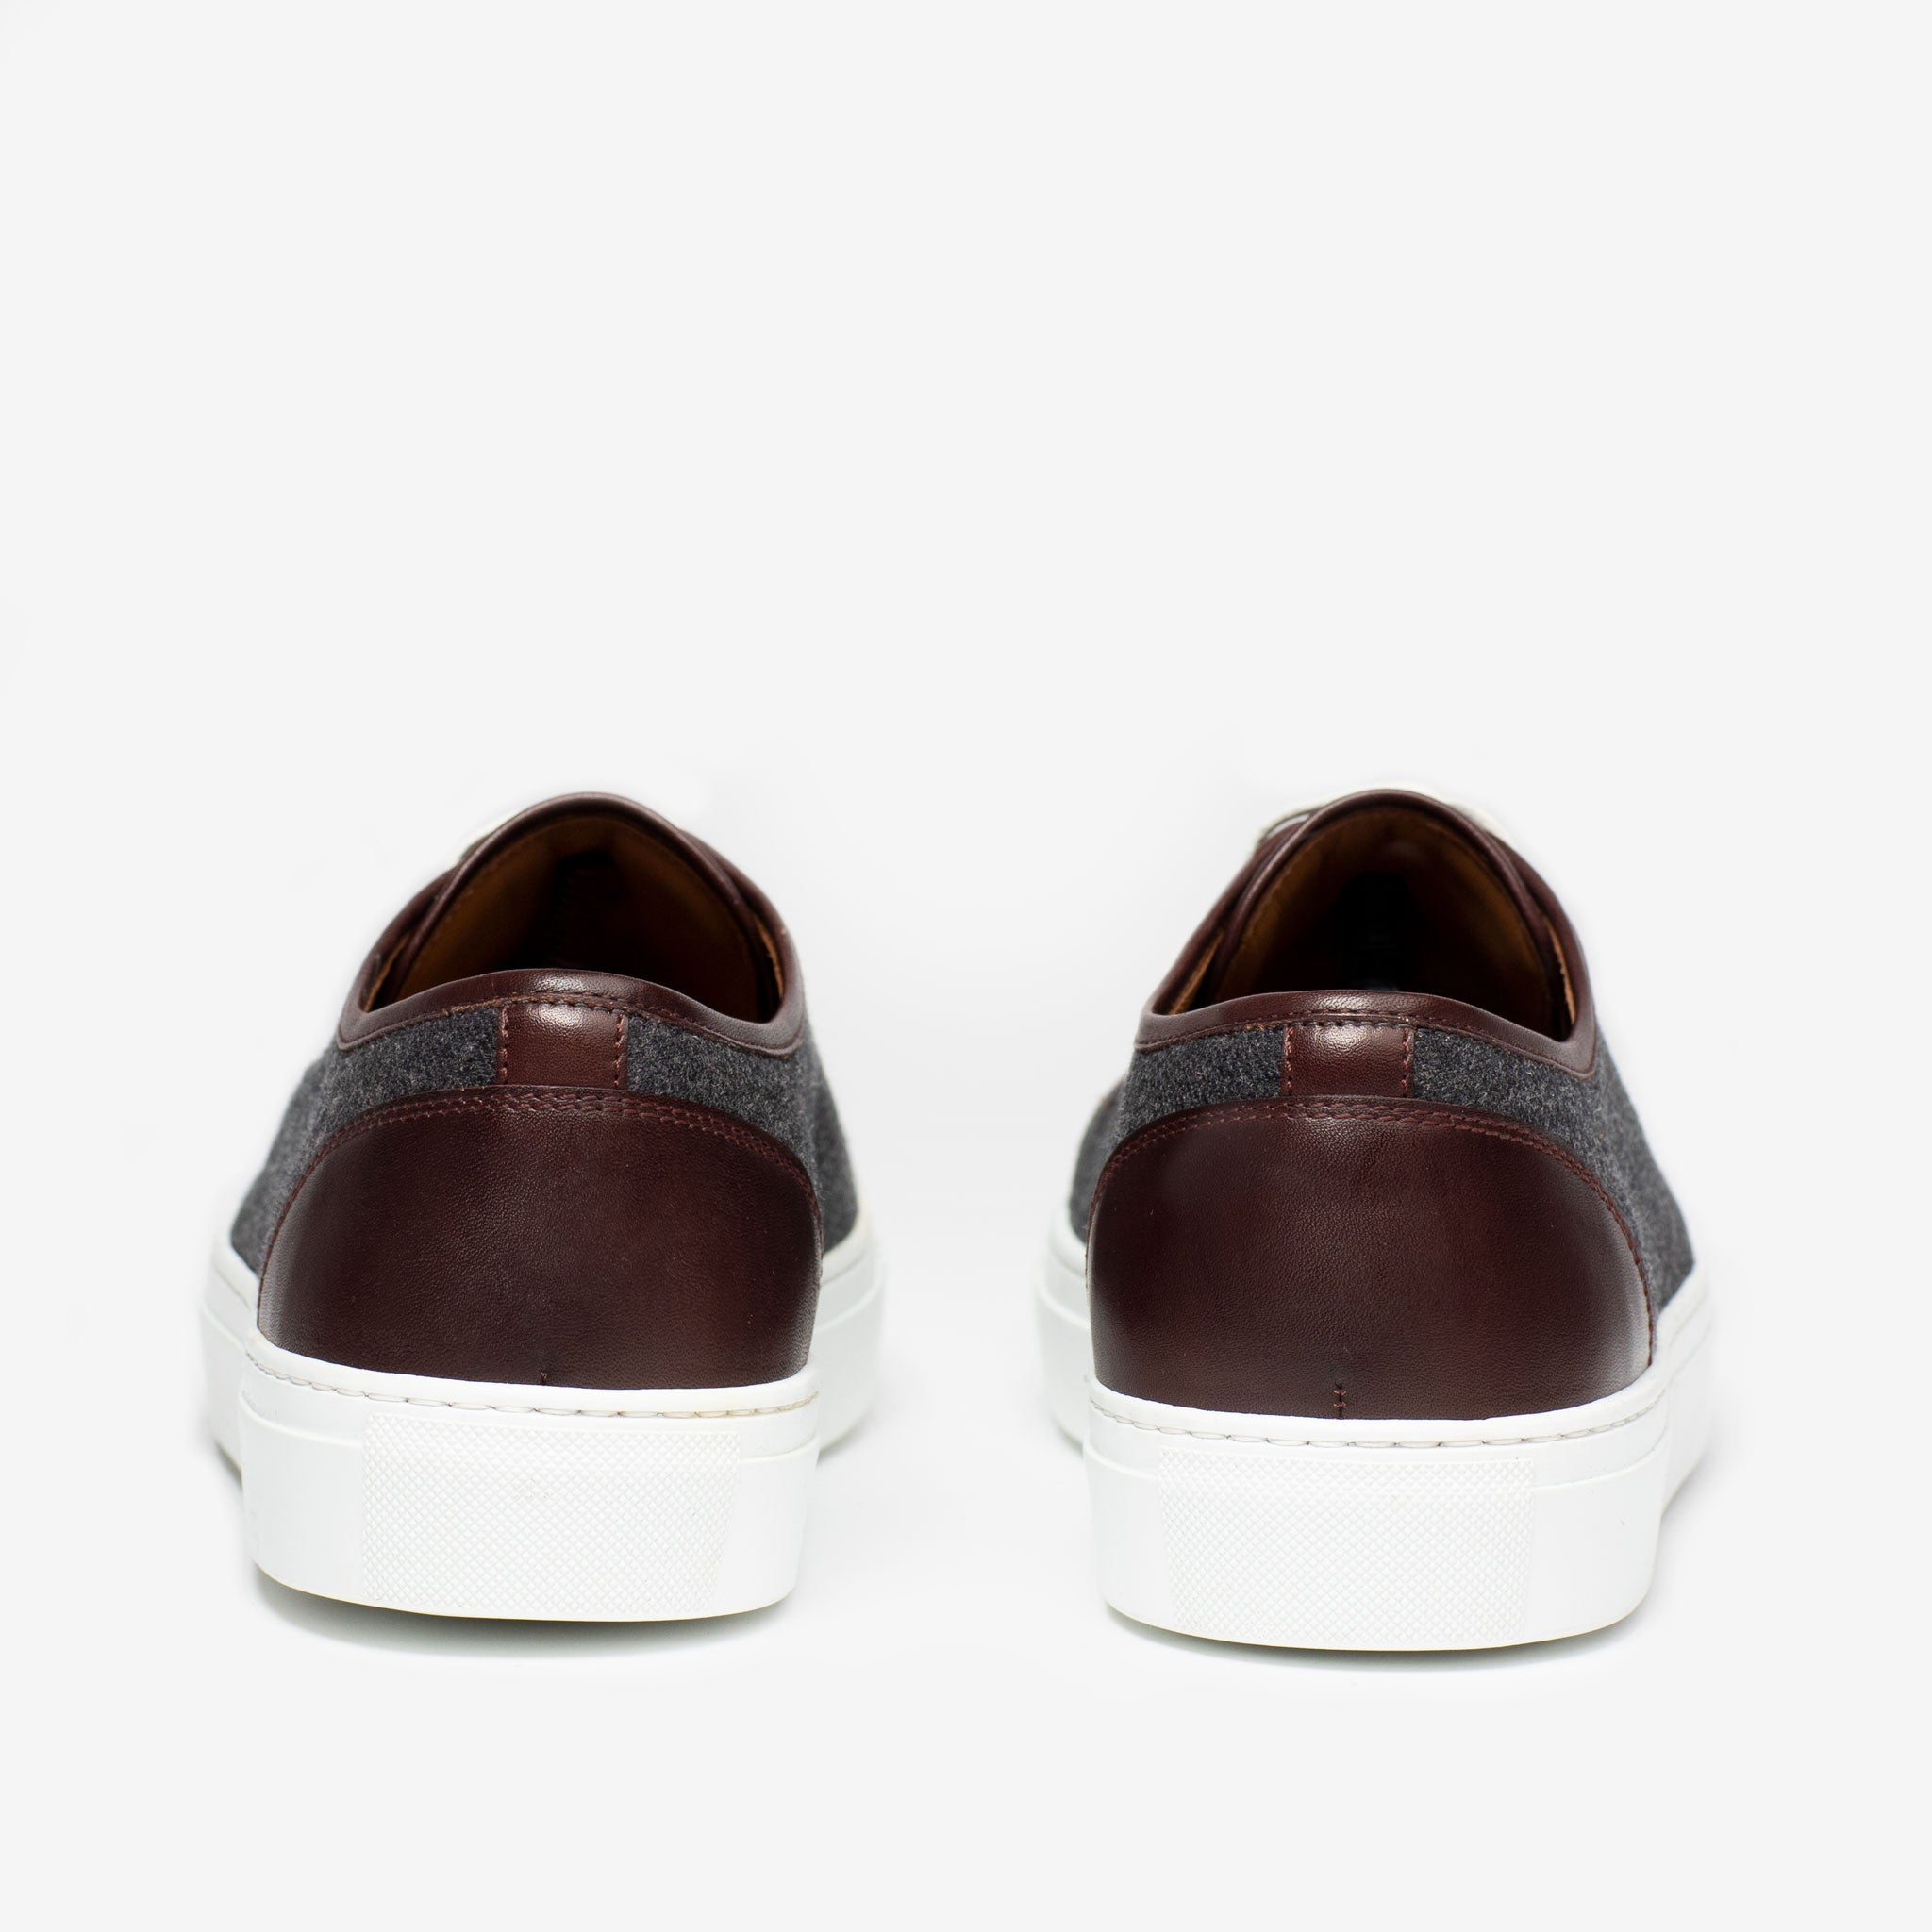 Heels Jack Sneaker in Grey Oxblood